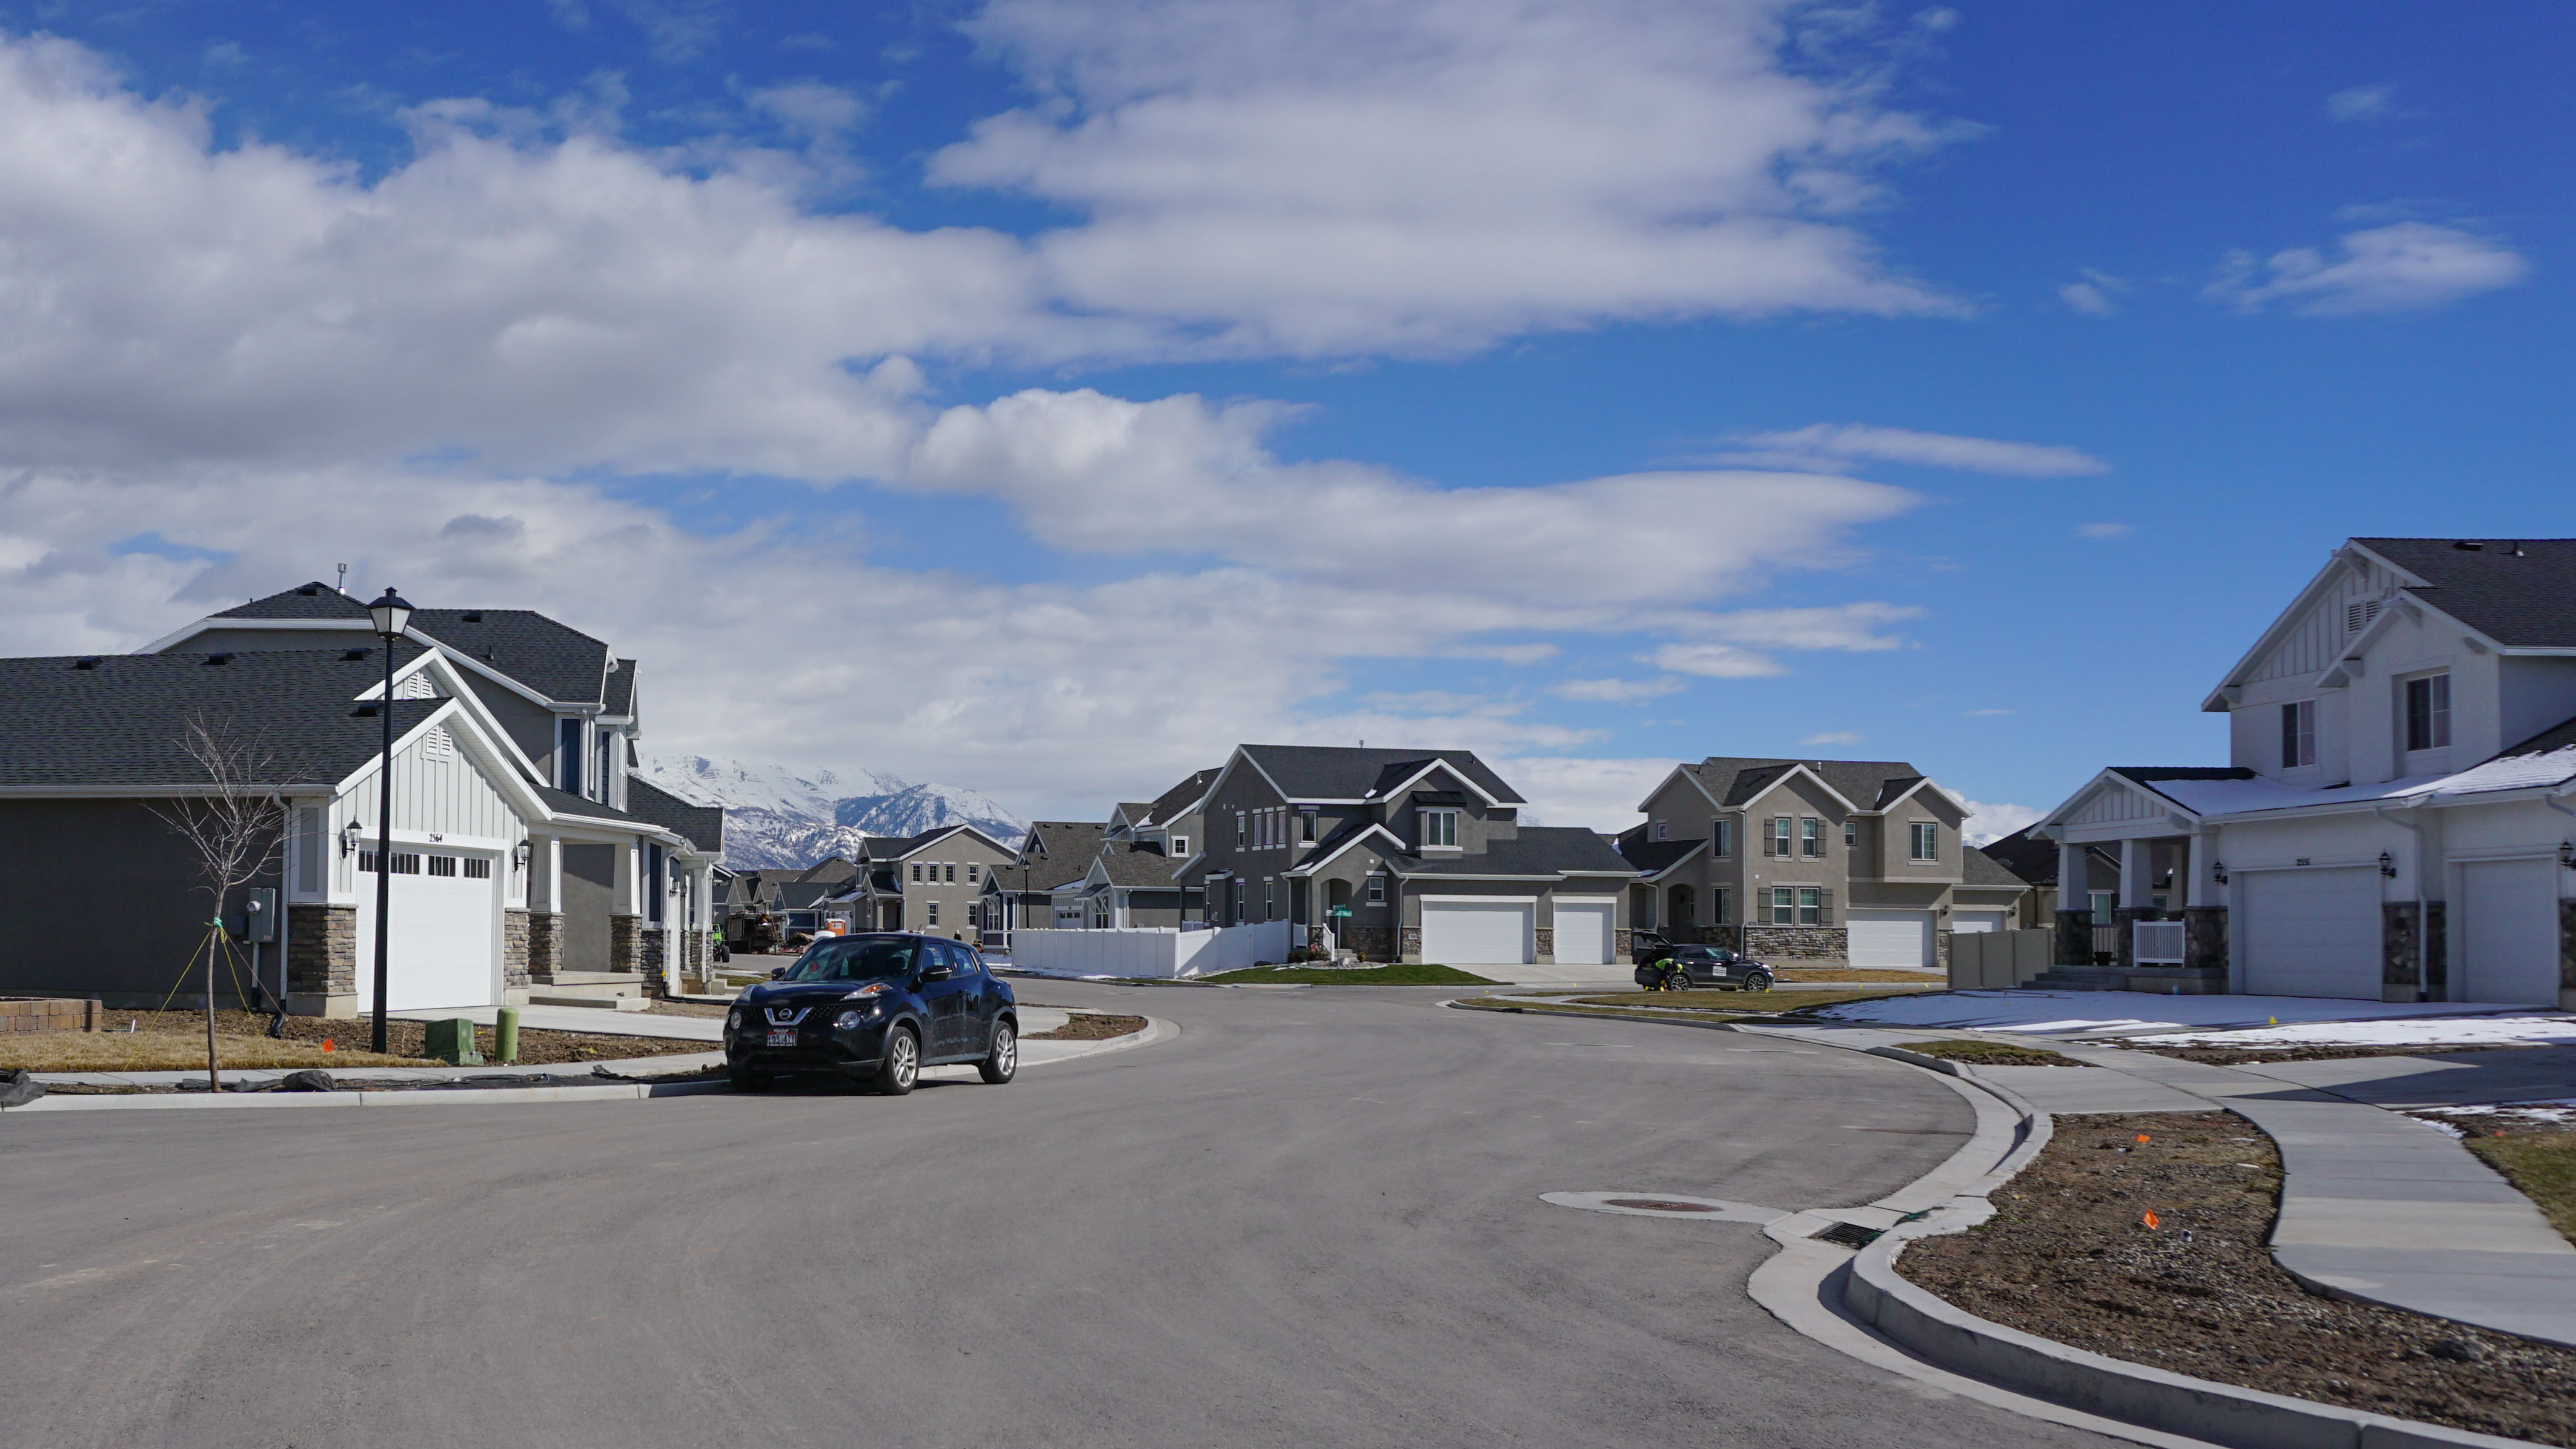 cranberry ridge homes for sale in lehi utah near thanksgiving point